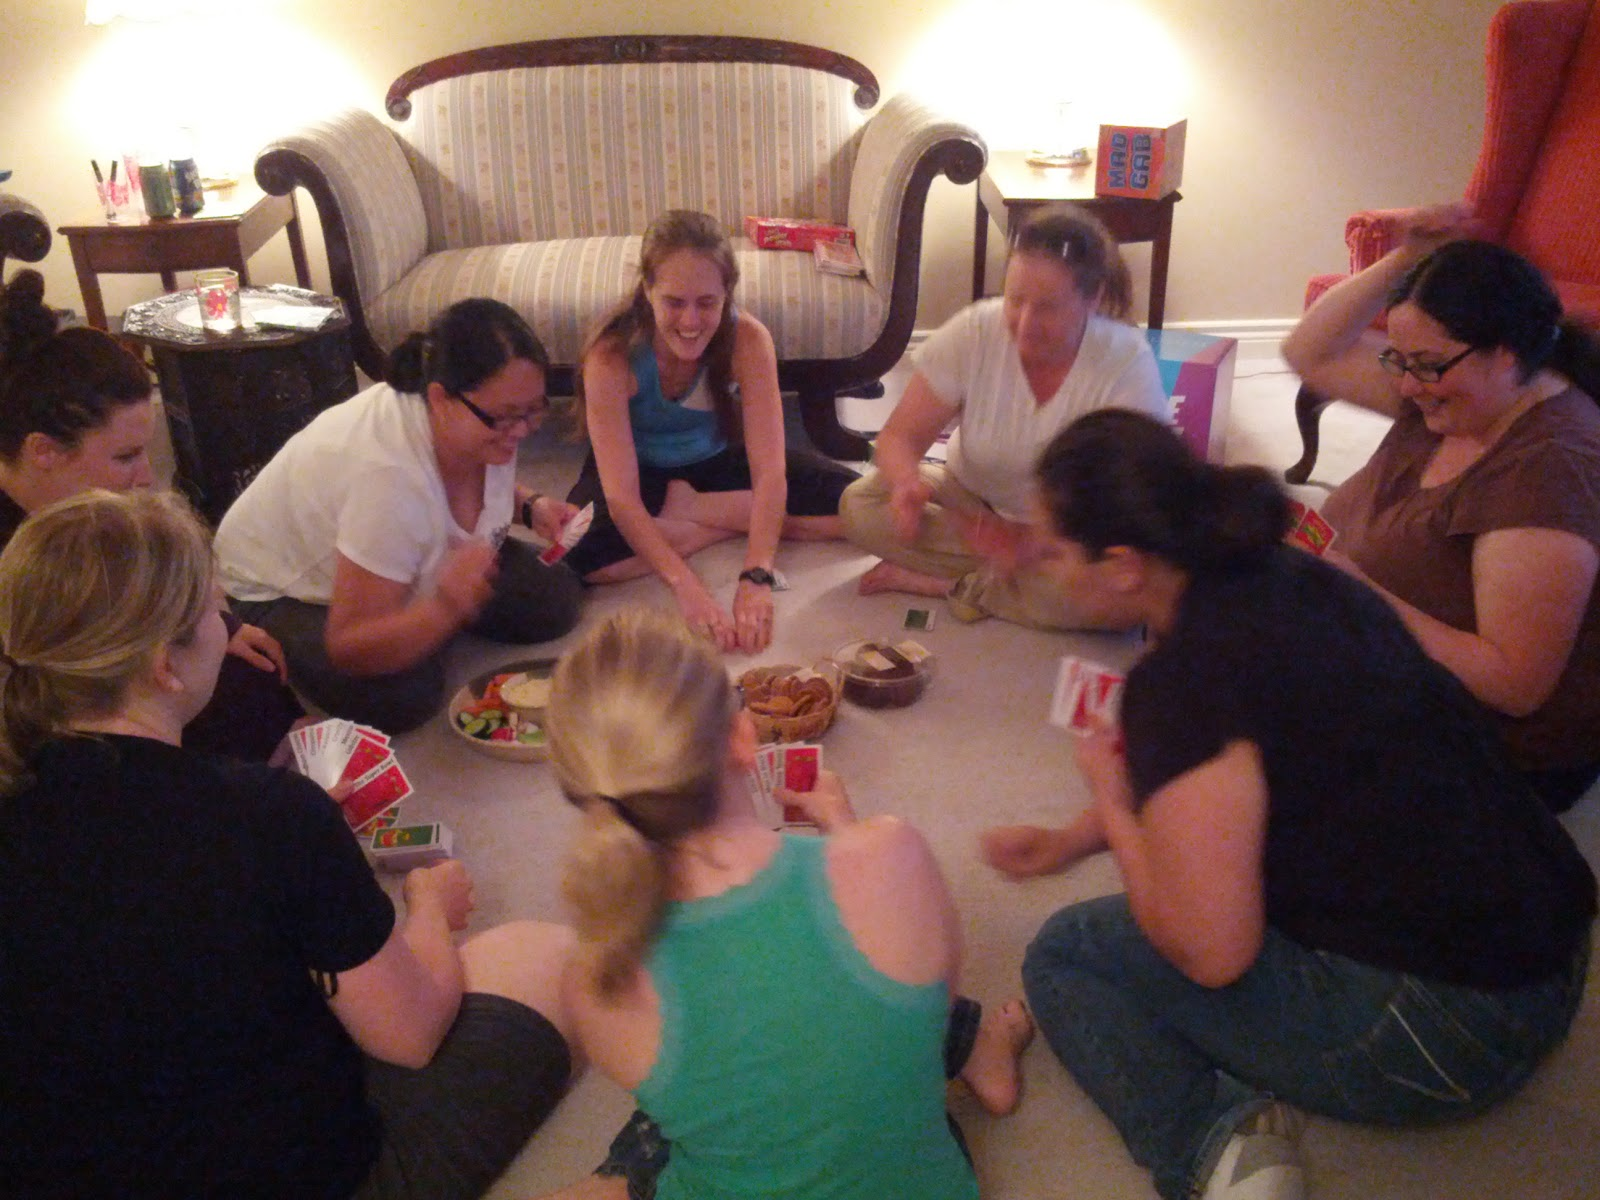 Fun games to play at a party for adults pity